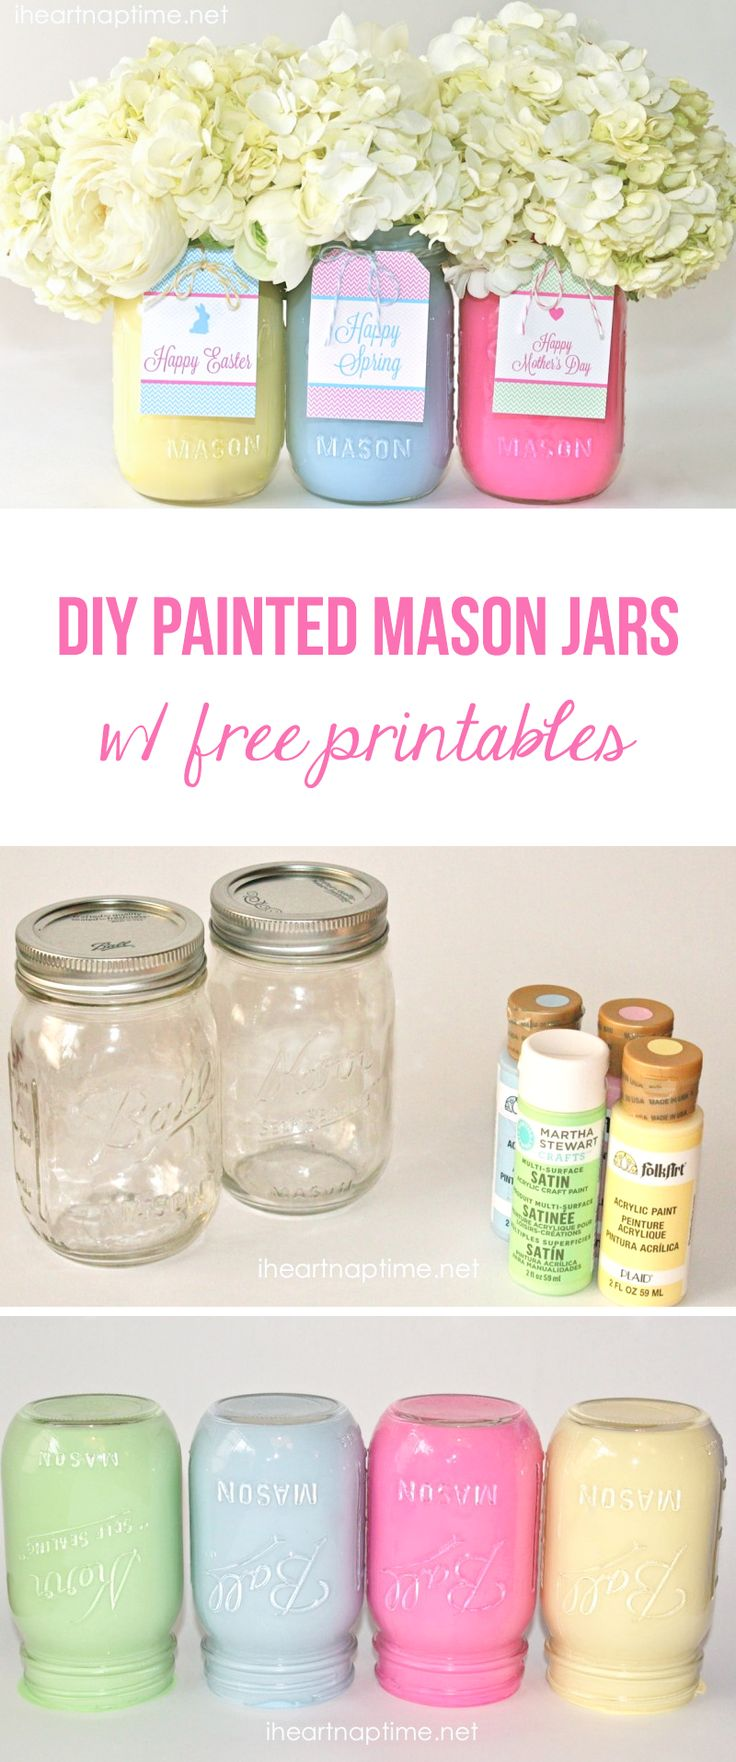 105 best mothers day images on pinterest mothers day craft make mom a diy painted mason jar its a super sweet gift and inexpensive to negle Image collections